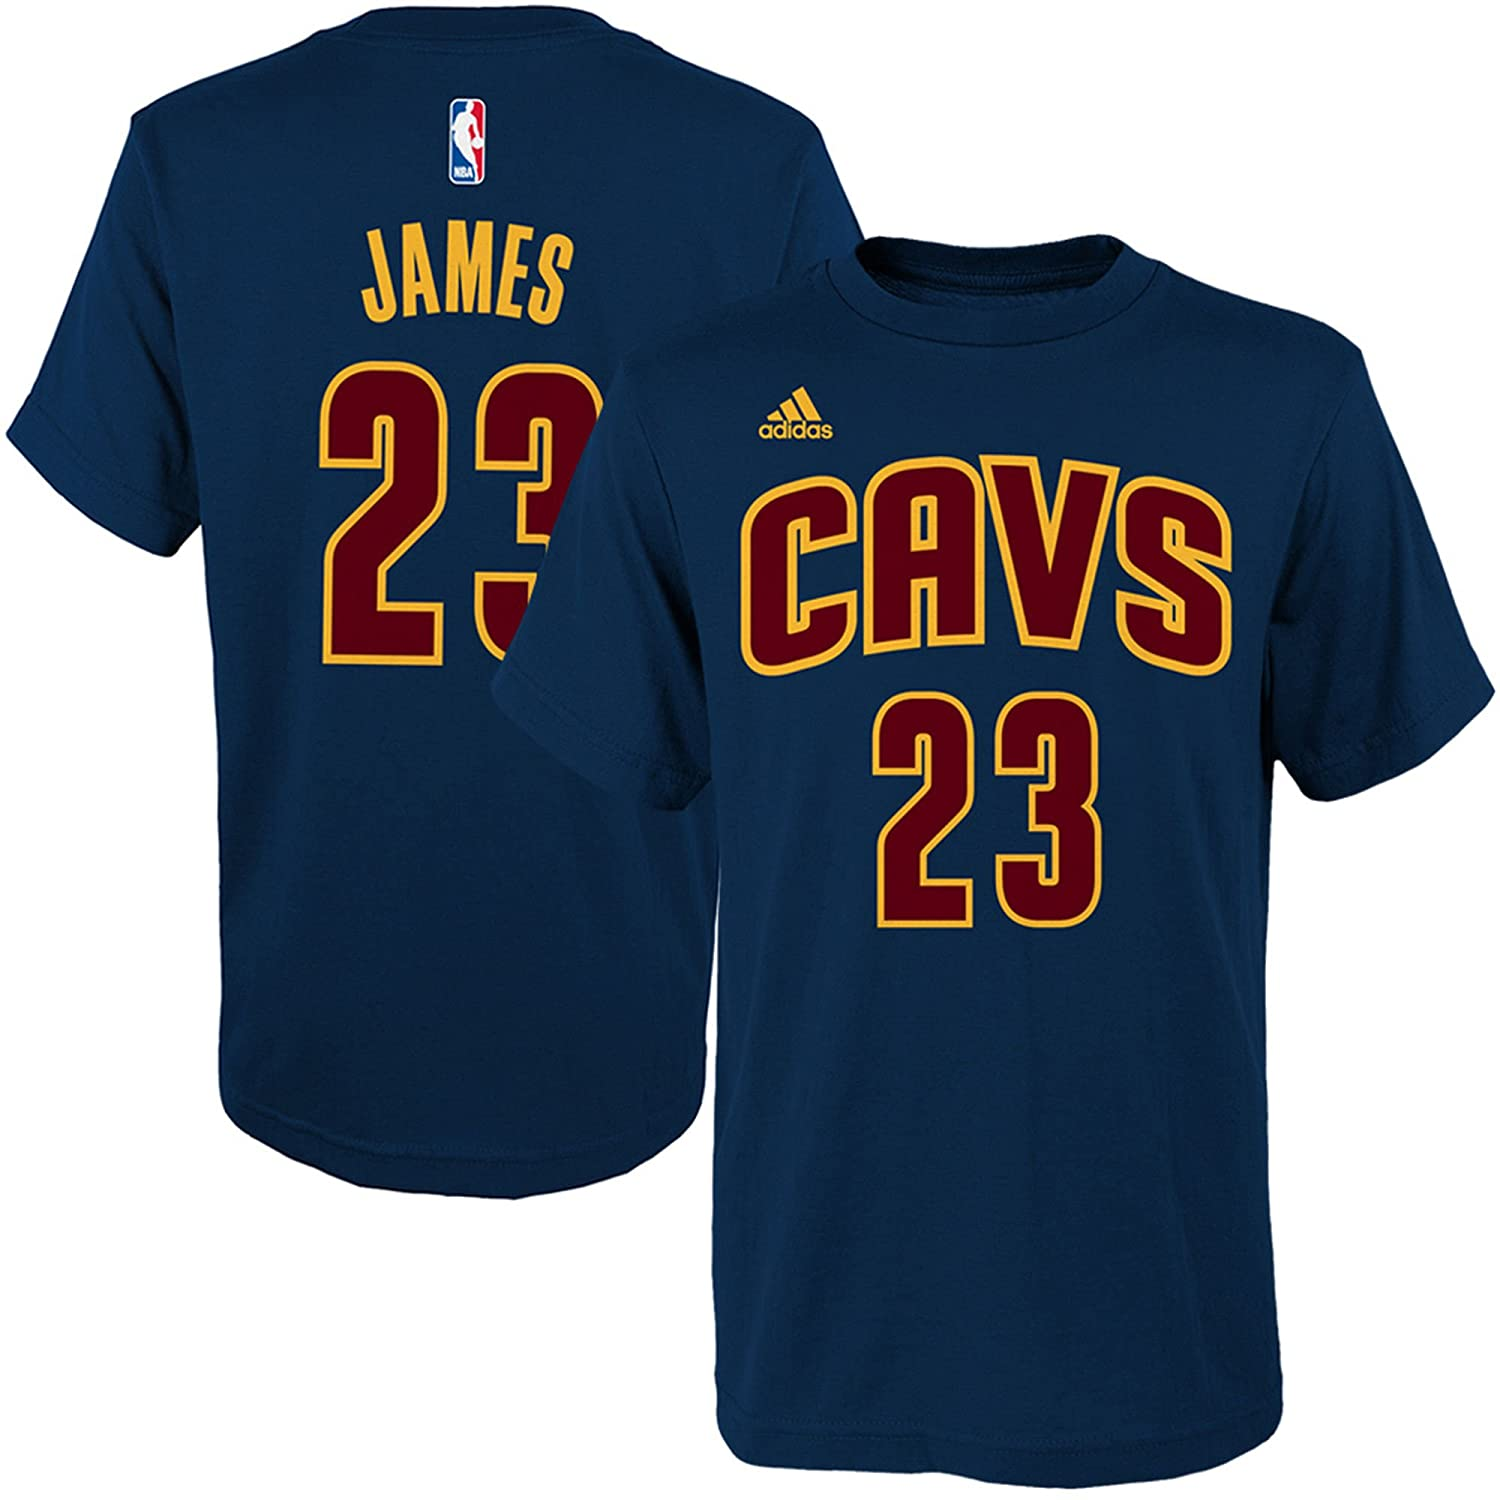 Cavs black t shirt jersey - Amazon Com Lebron James Cleveland Cavaliers Navy Youth Name And Number Jersey T Shirt Sports Outdoors